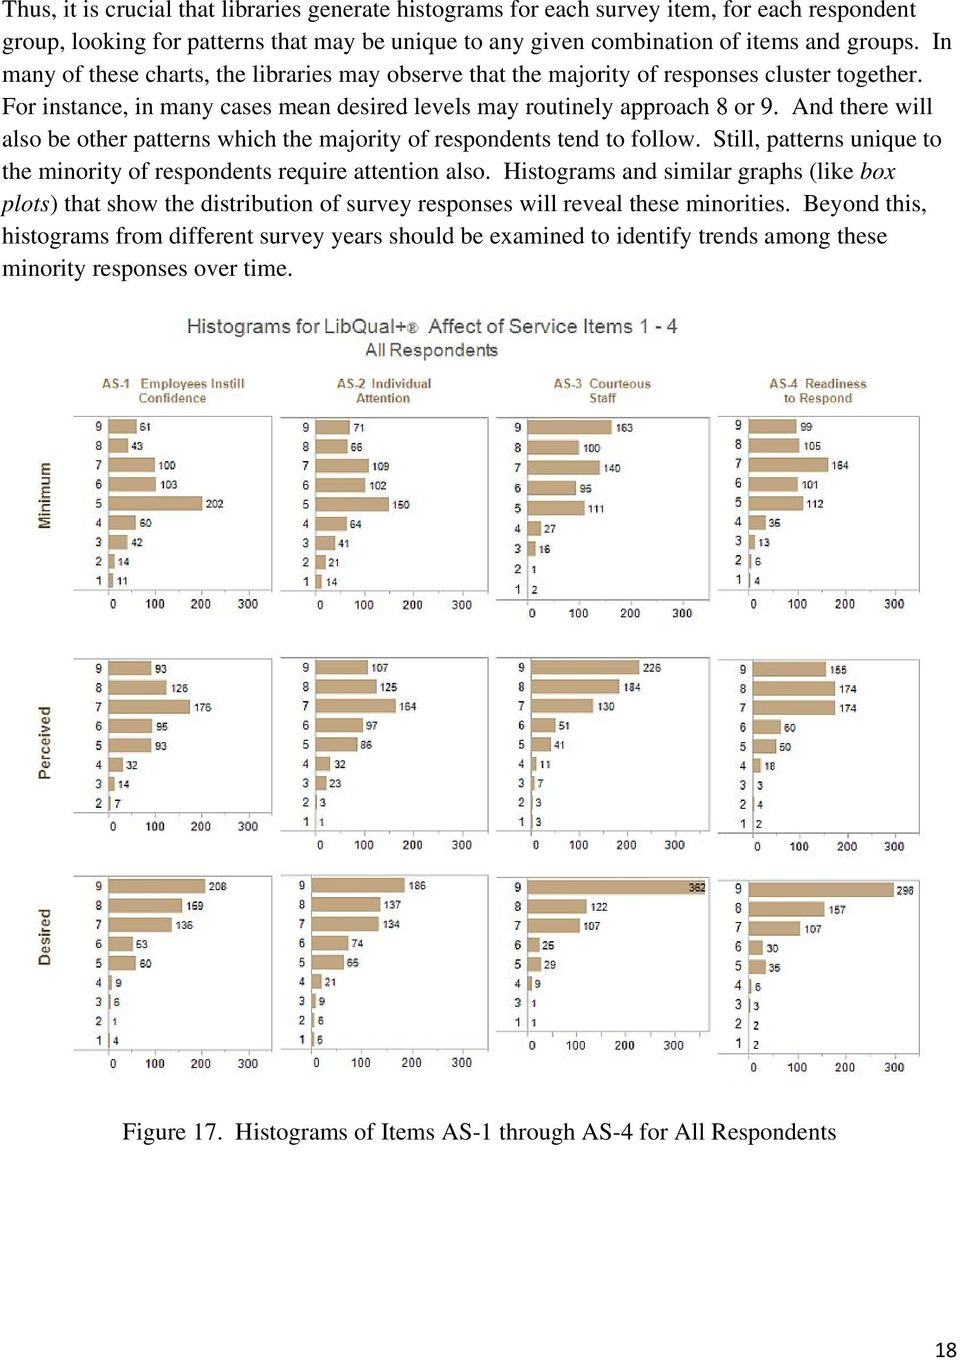 And there will also be other patterns which the majority of respondents tend to follow. Still, patterns unique to the minority of respondents require attention also.